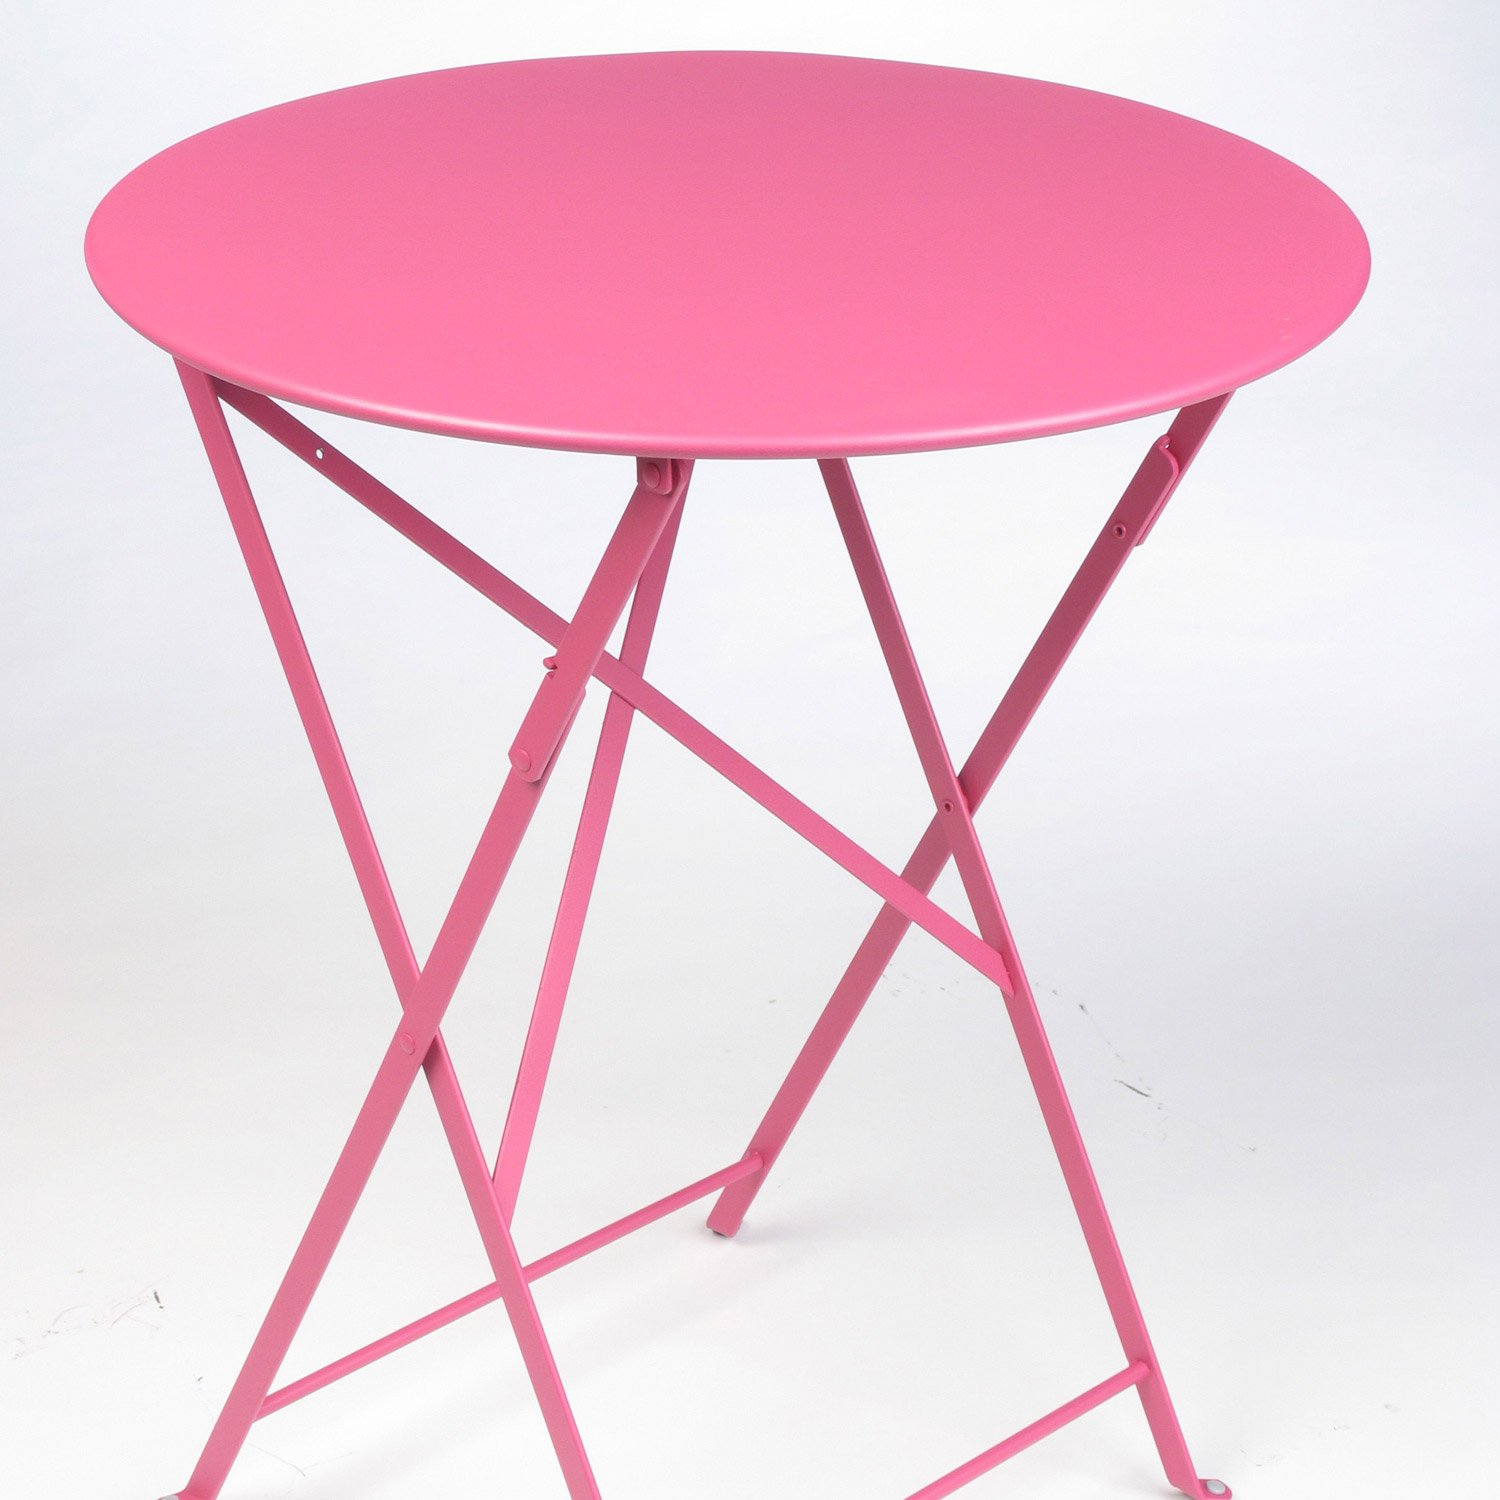 table de jardin fermob bistro ronde fuschia 2 personnes leroy merlin. Black Bedroom Furniture Sets. Home Design Ideas